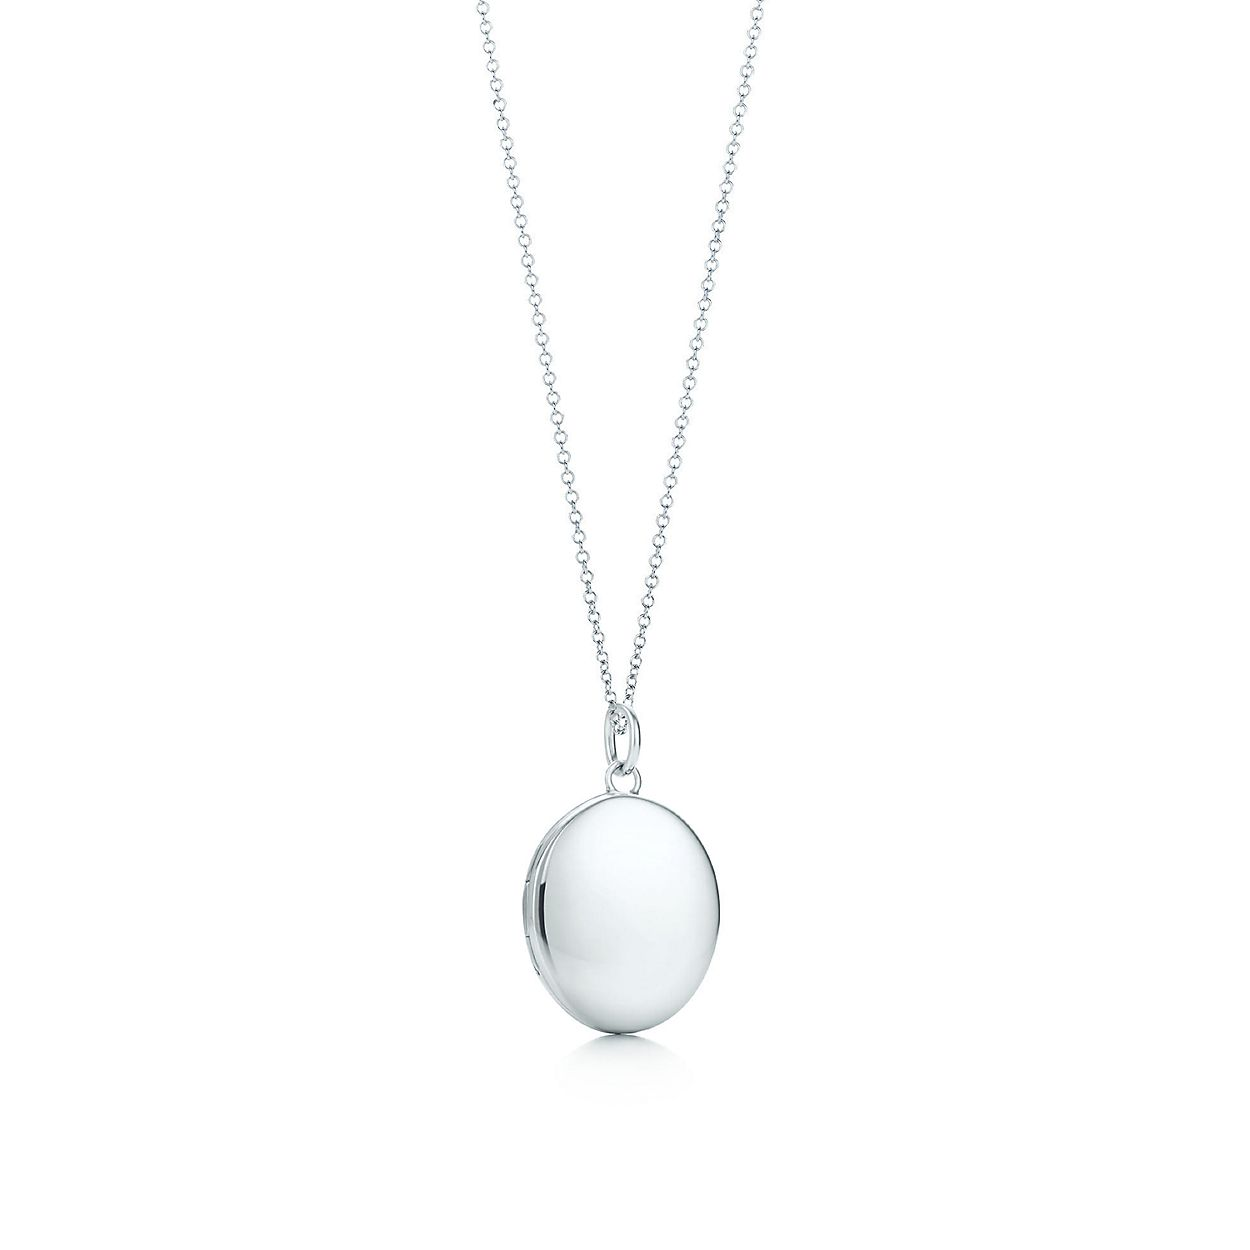 ca0379c5a Oval locket in sterling silver on a chain. | Tiffany & Co.